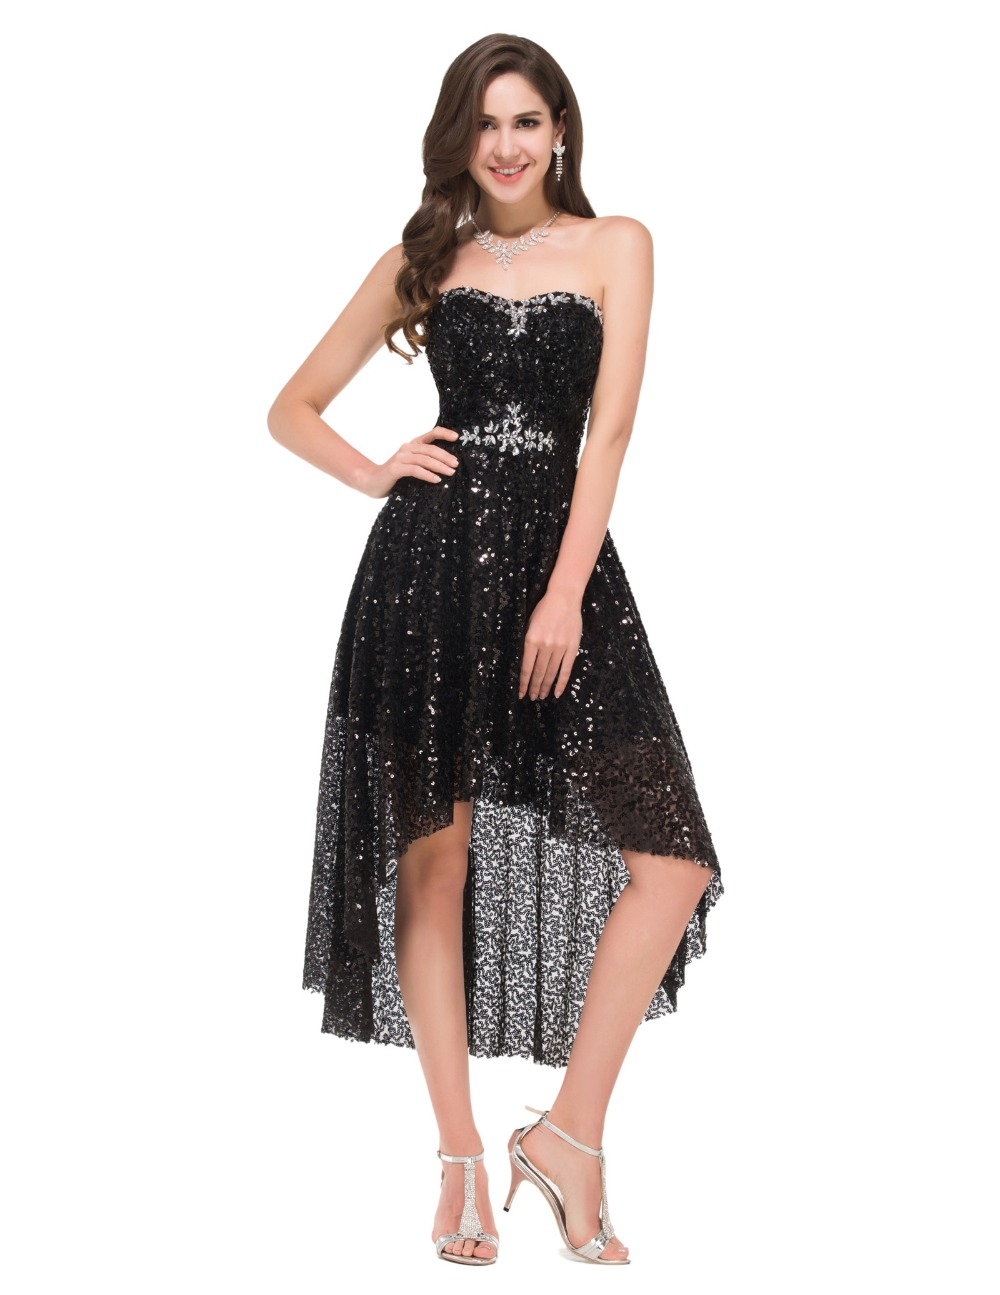 Black Bridesmaid Dresses Under 50 - Ocodea.com